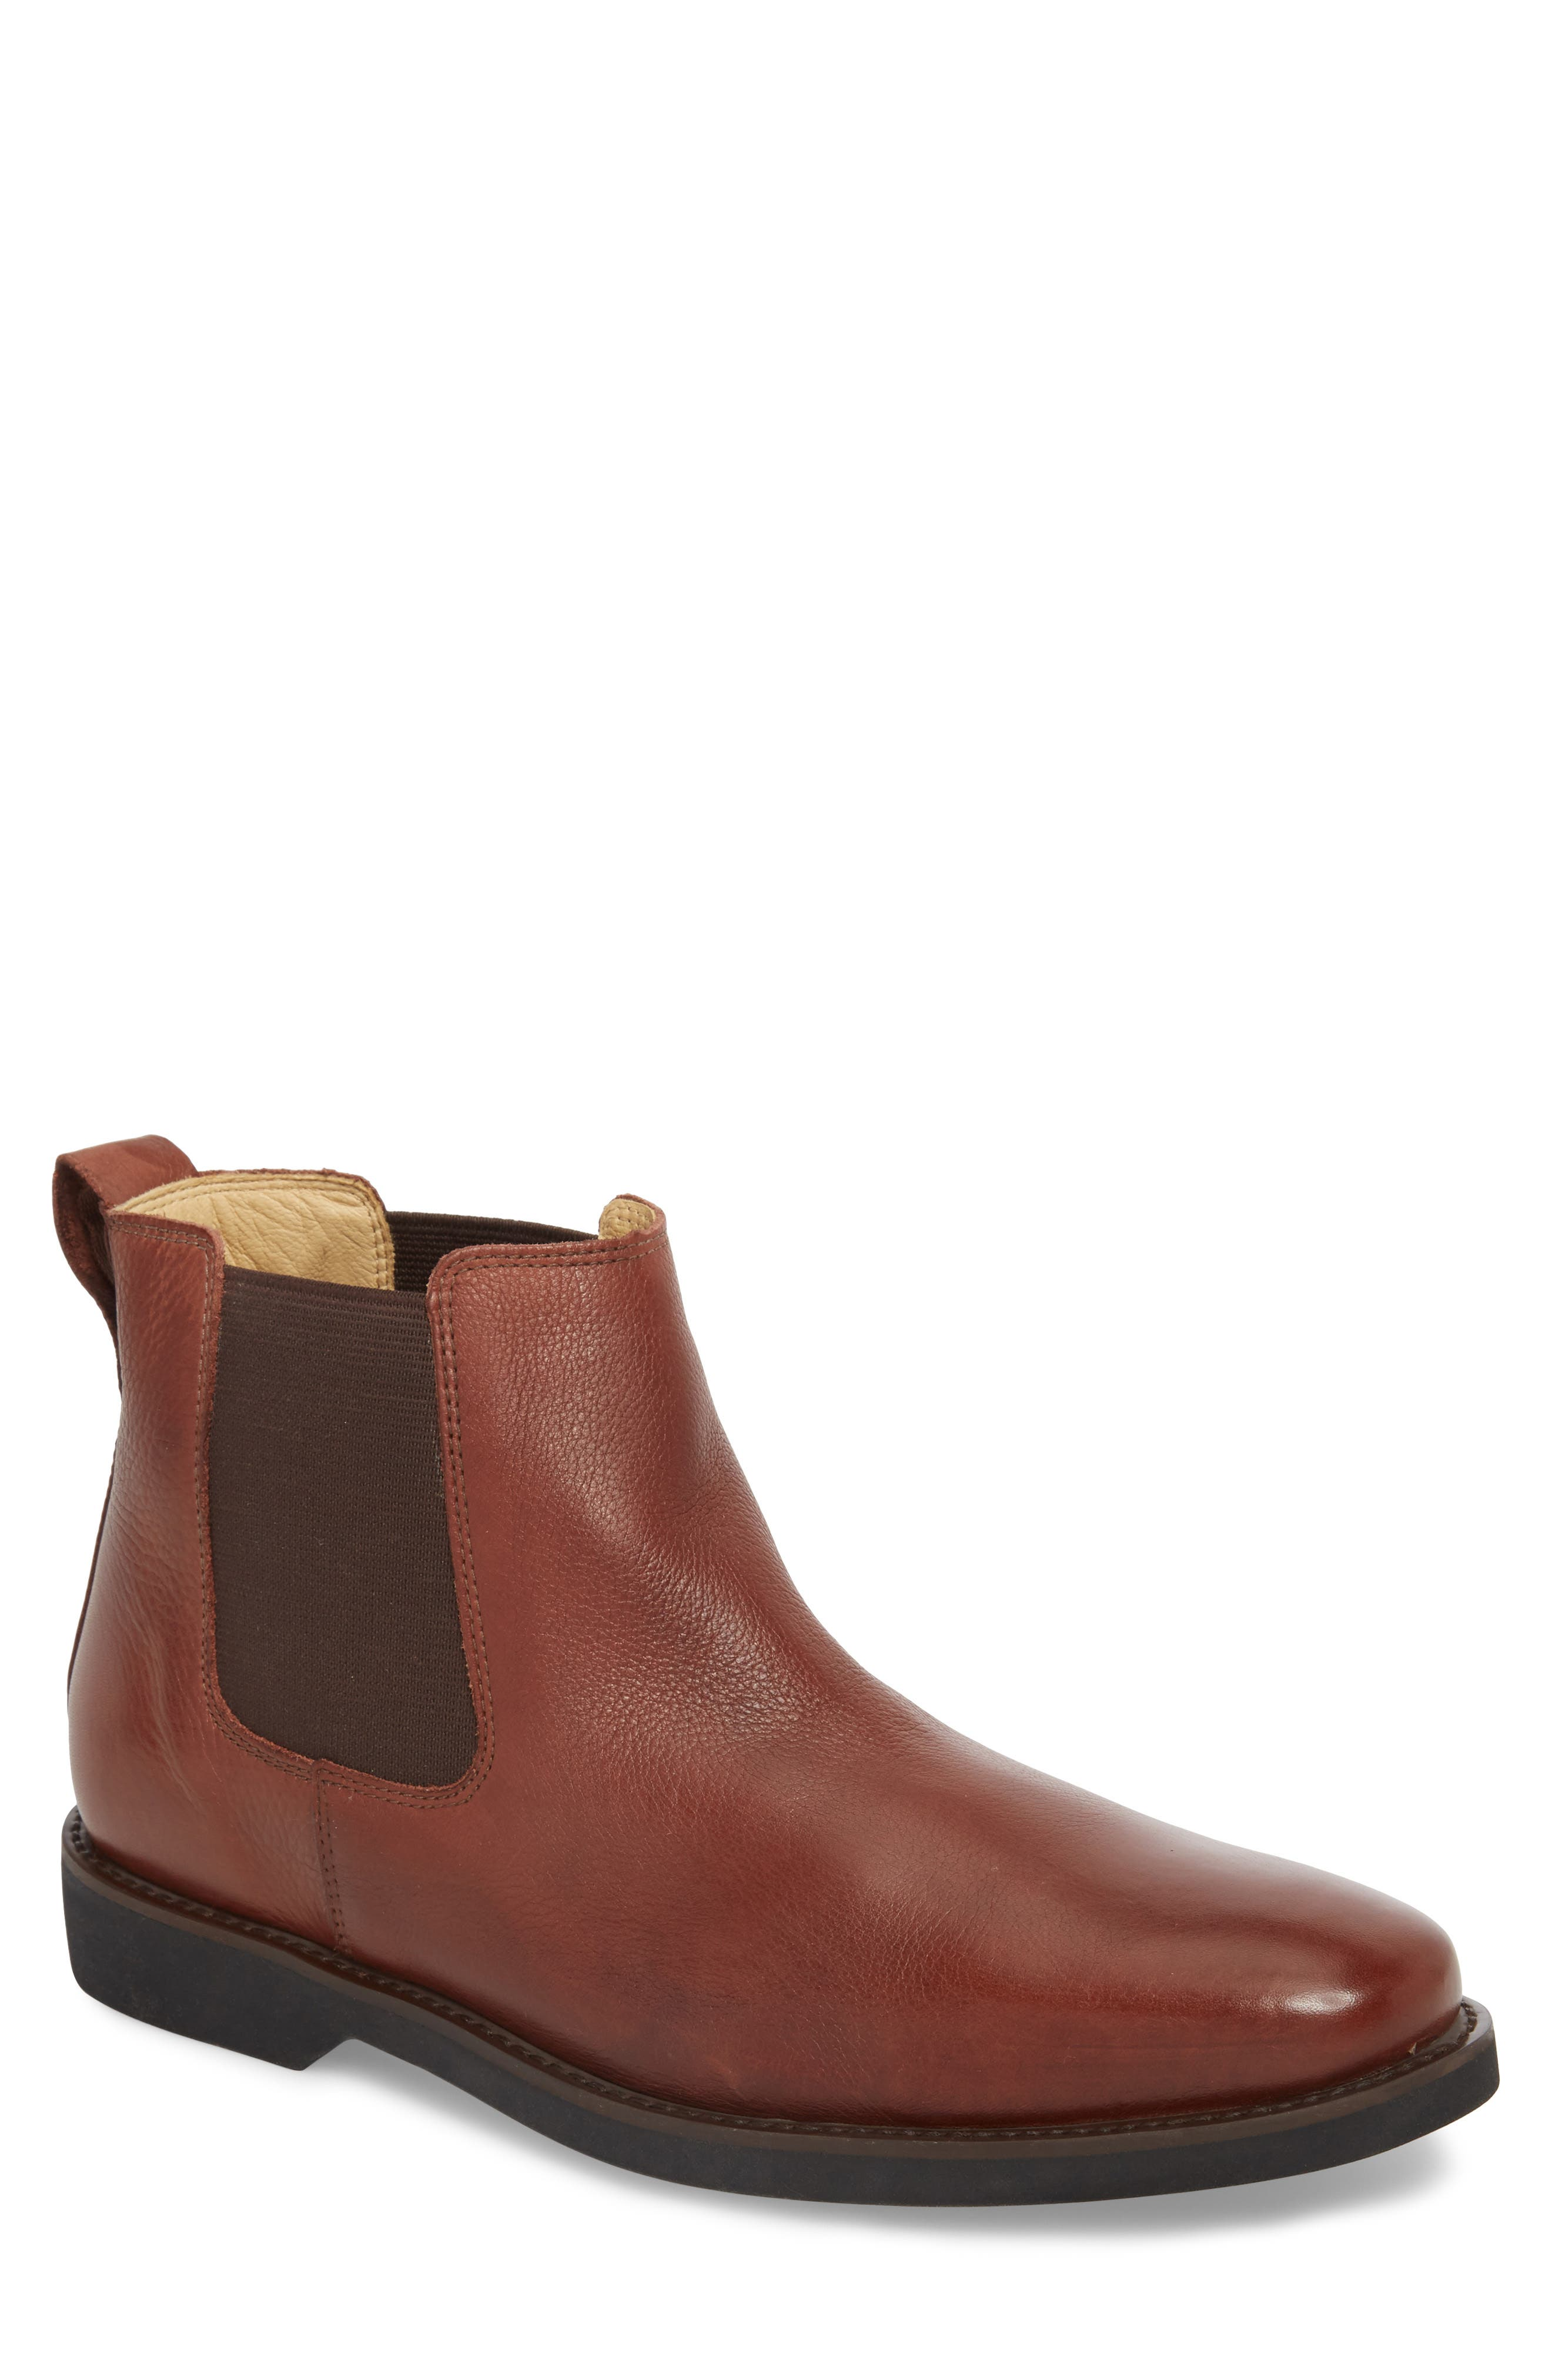 Cardoso Chelsea Boot,                         Main,                         color, Floater Pinaho Leather